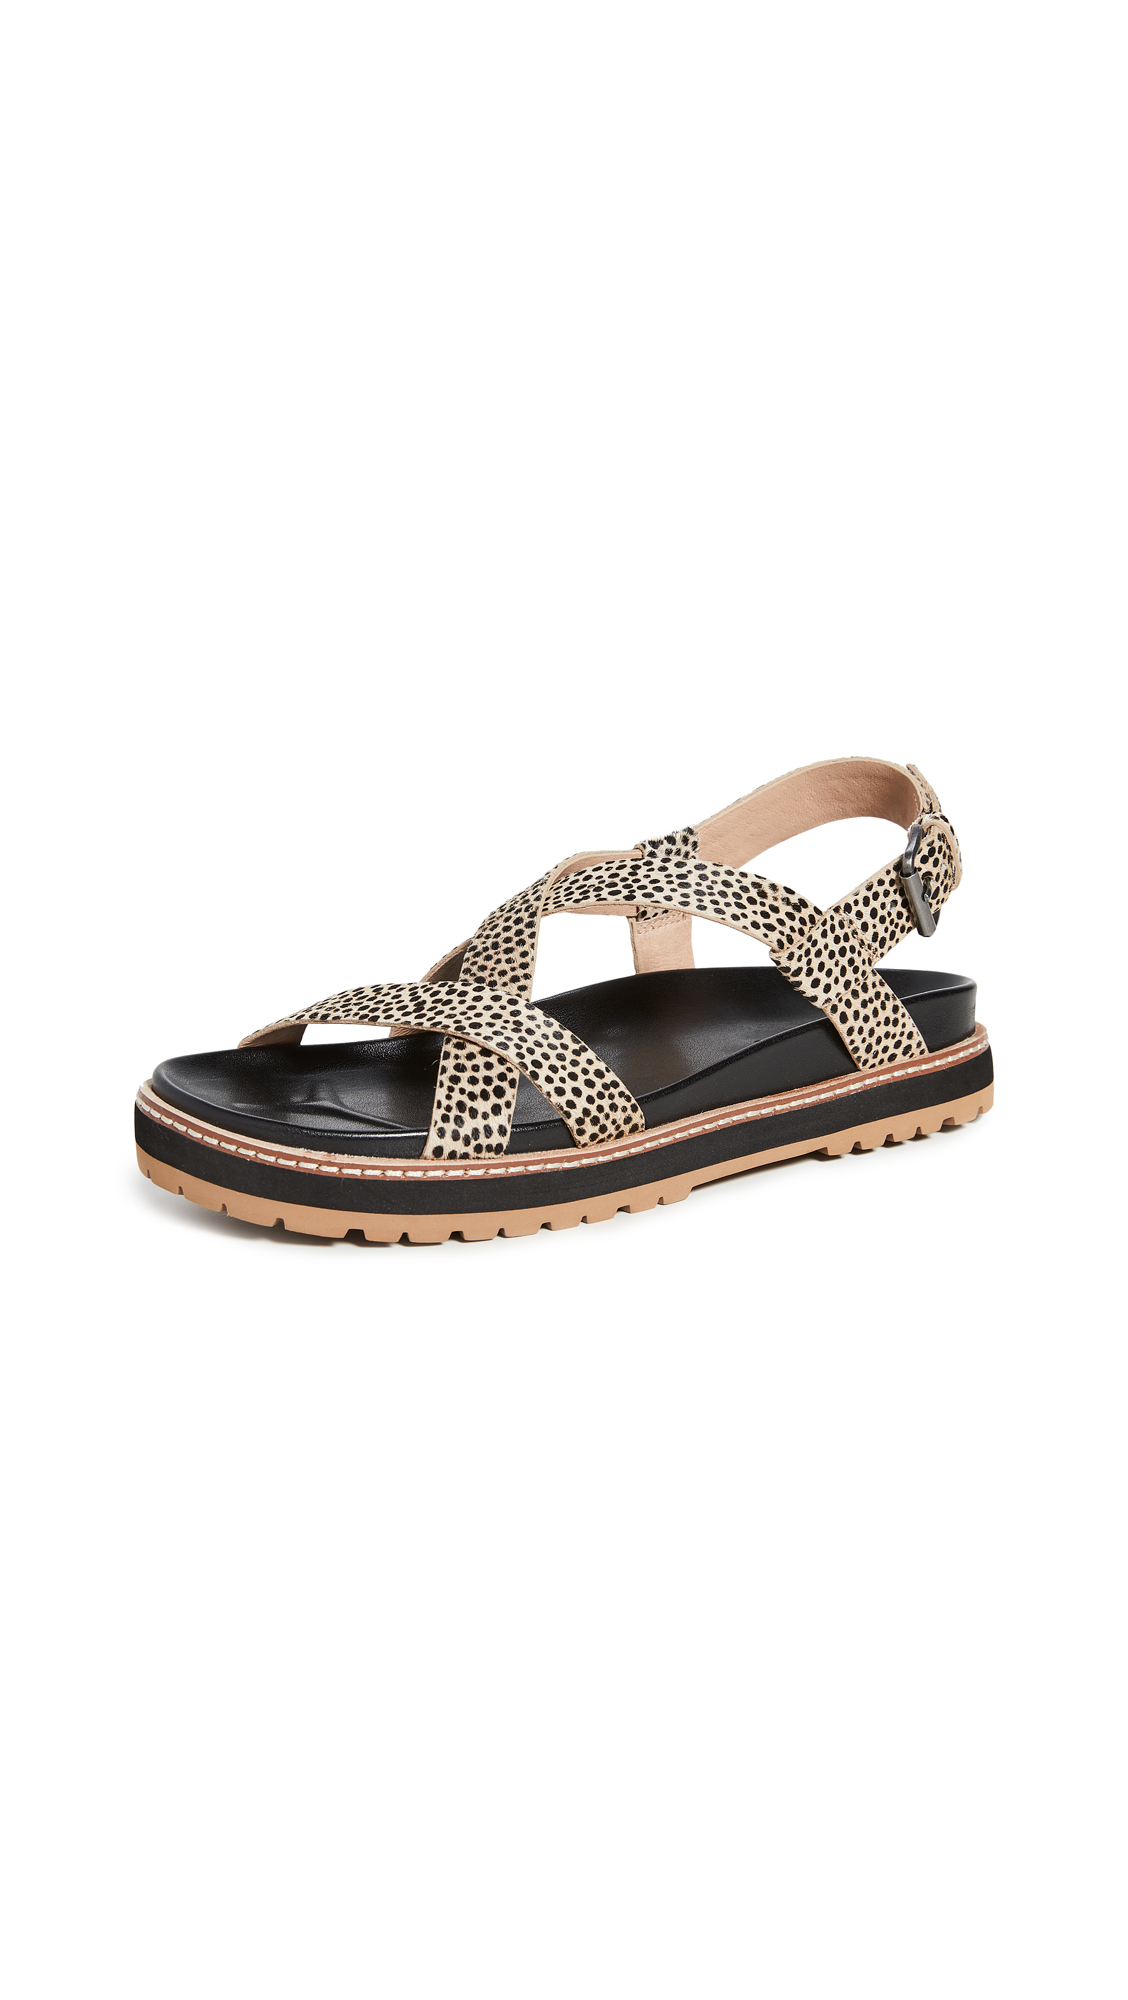 Buy Madewell Piper Lugsole Sandals online, shop Madewell